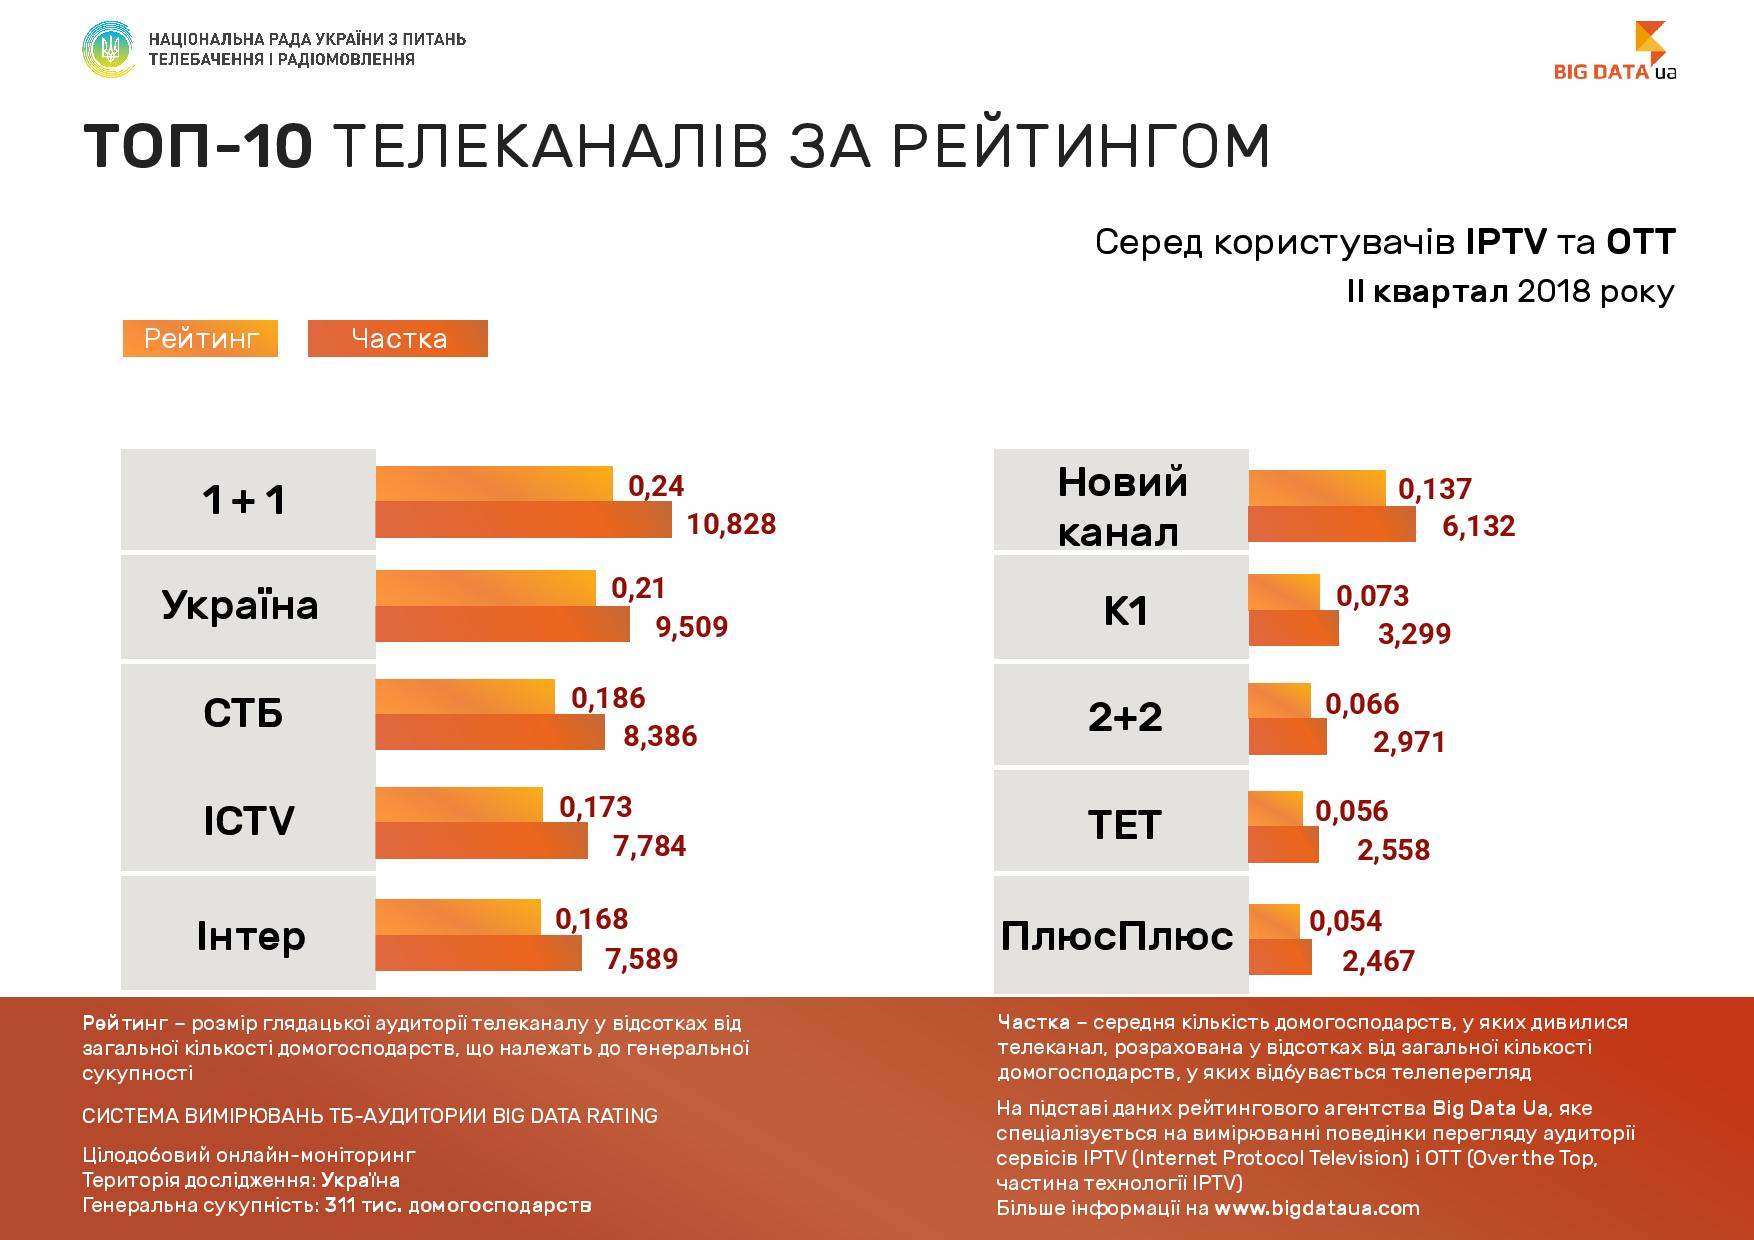 TV audience ratings for IPTV/OTT users for the second